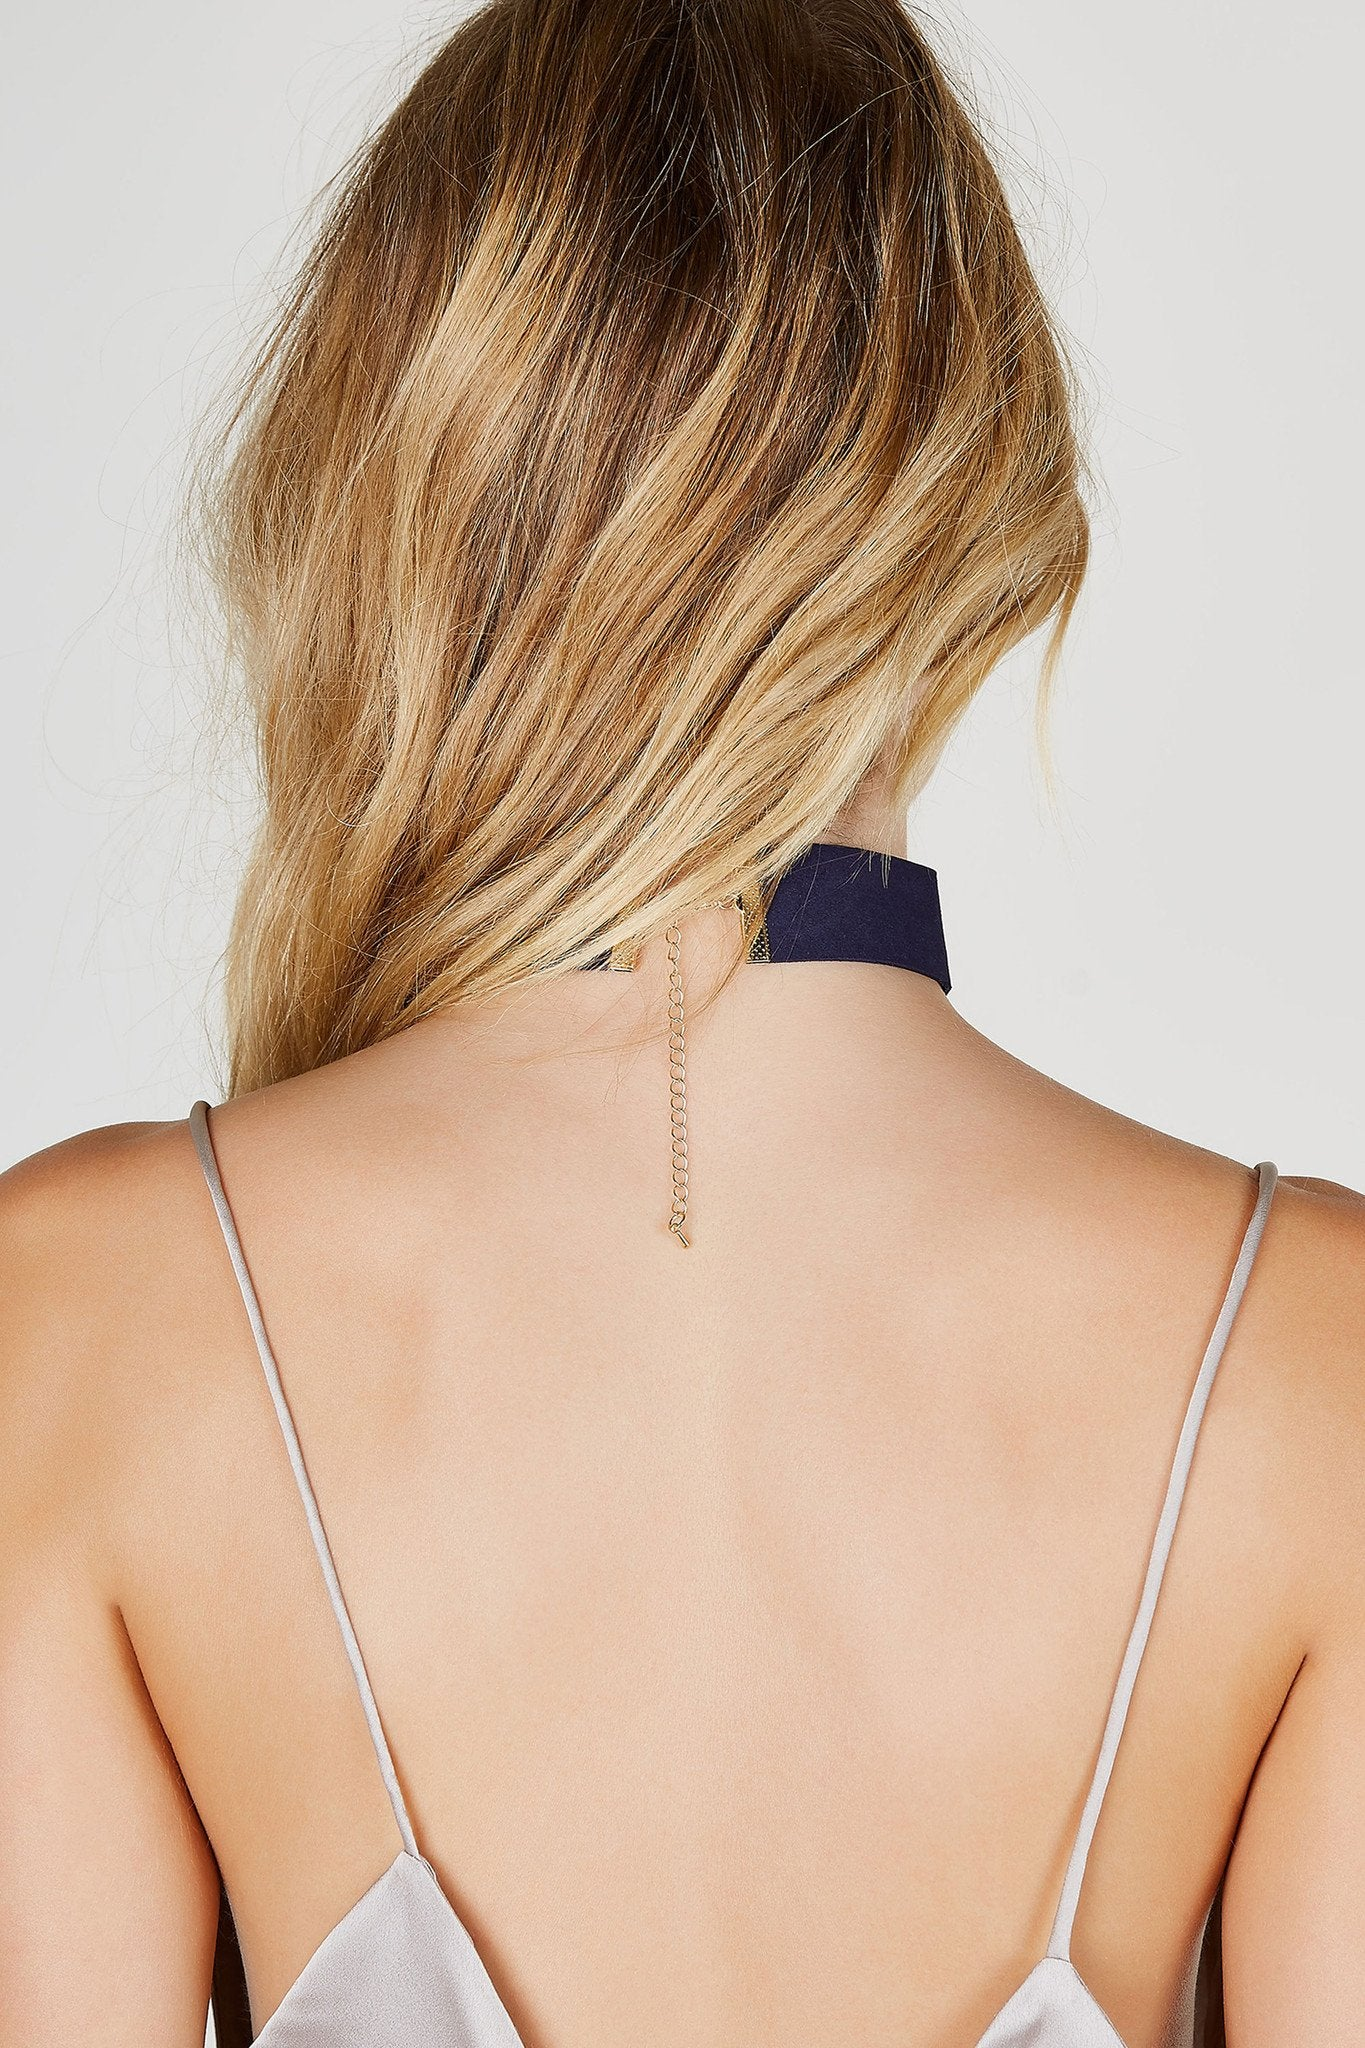 A classic single band choker with a twist. Trendy laced dsign brings added personality to your look. Style with a basic tee and denim cut offs for a casual chic look.